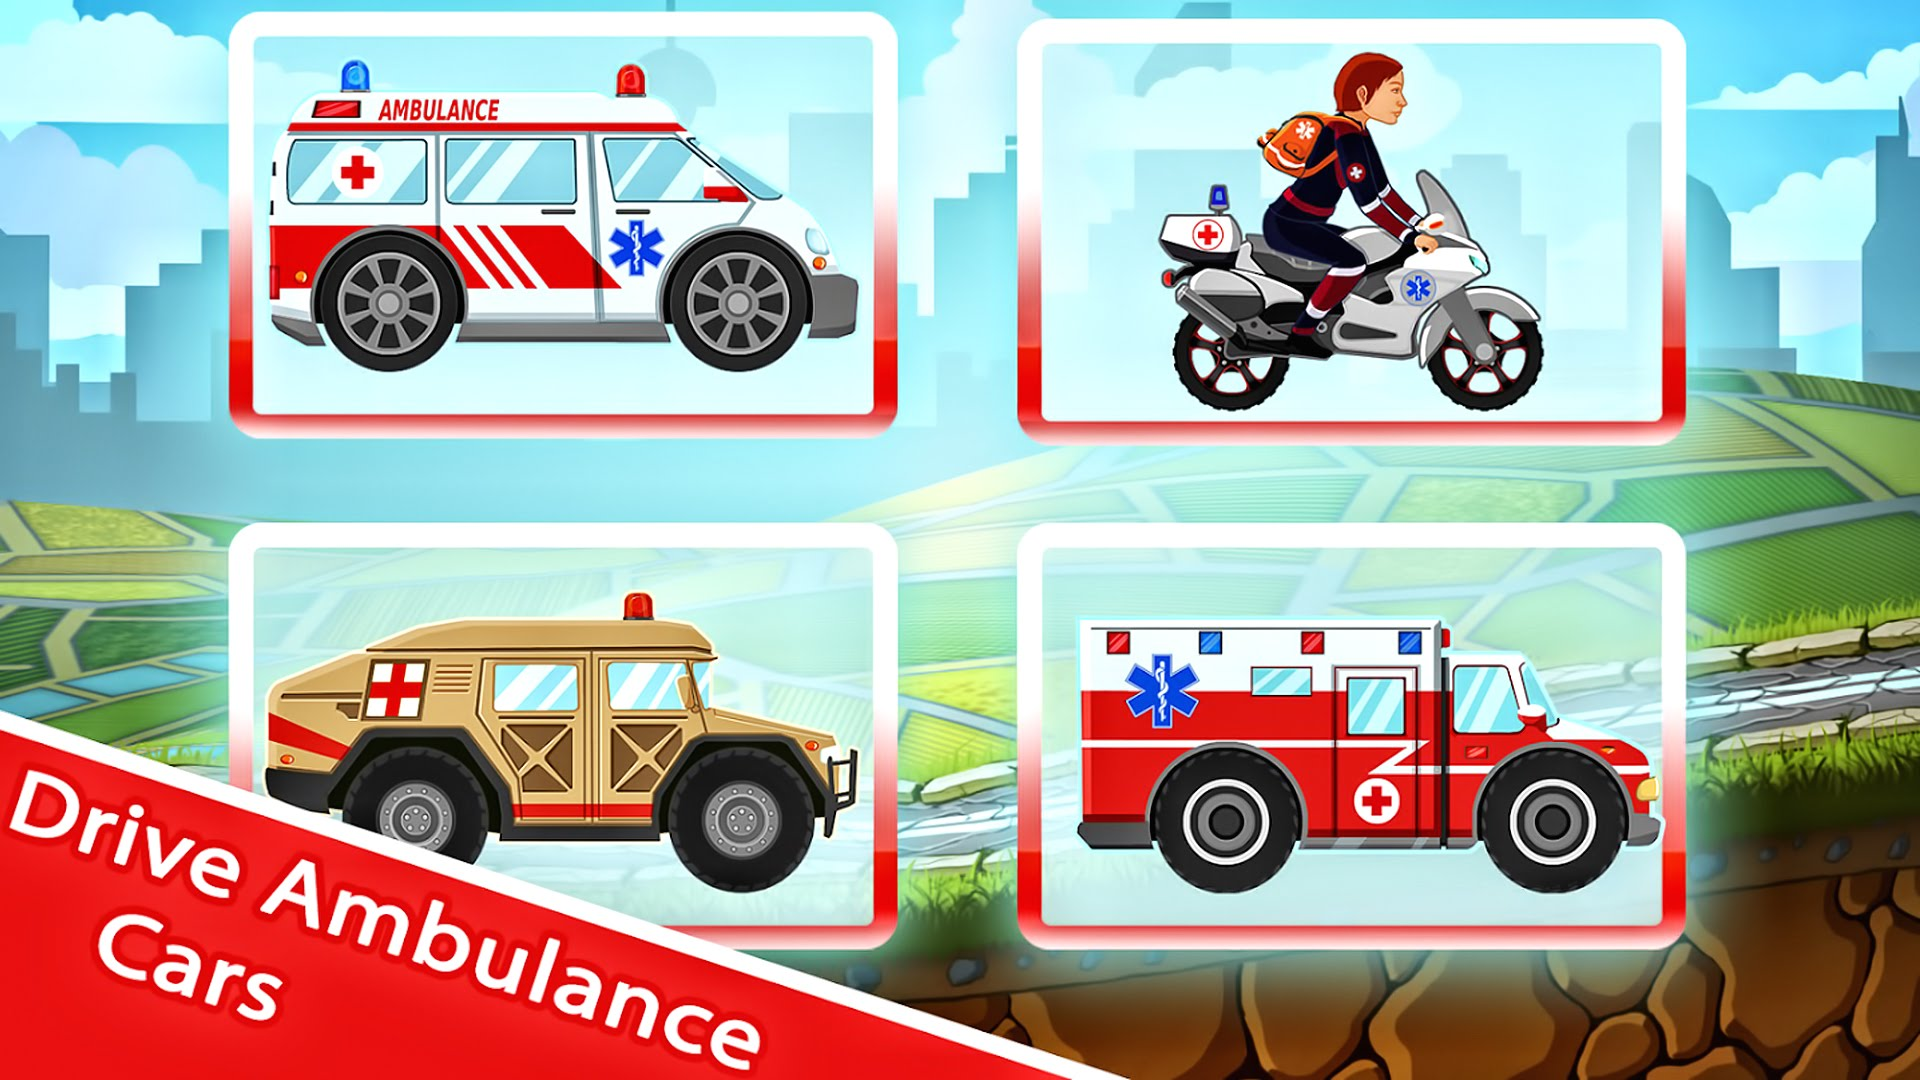 Ambulance clipart race car. Cartoons for kids kid